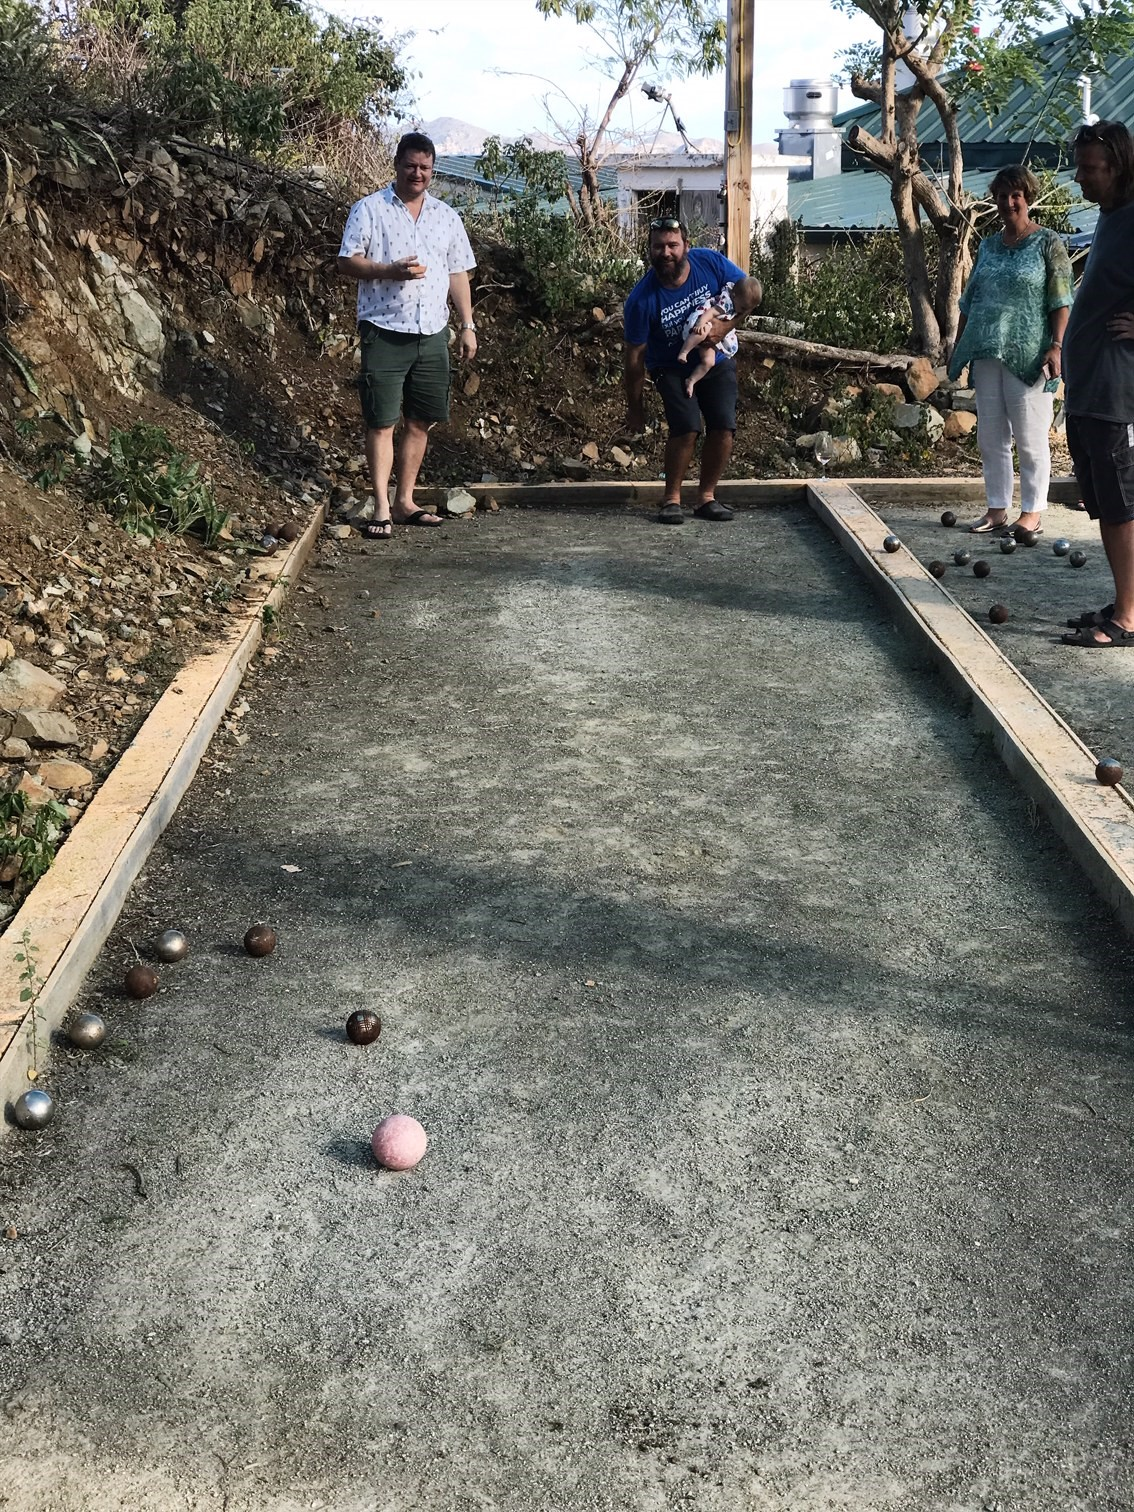 Sunday Brunch at Brandywine Restaurant - Playing Petanque after lunch